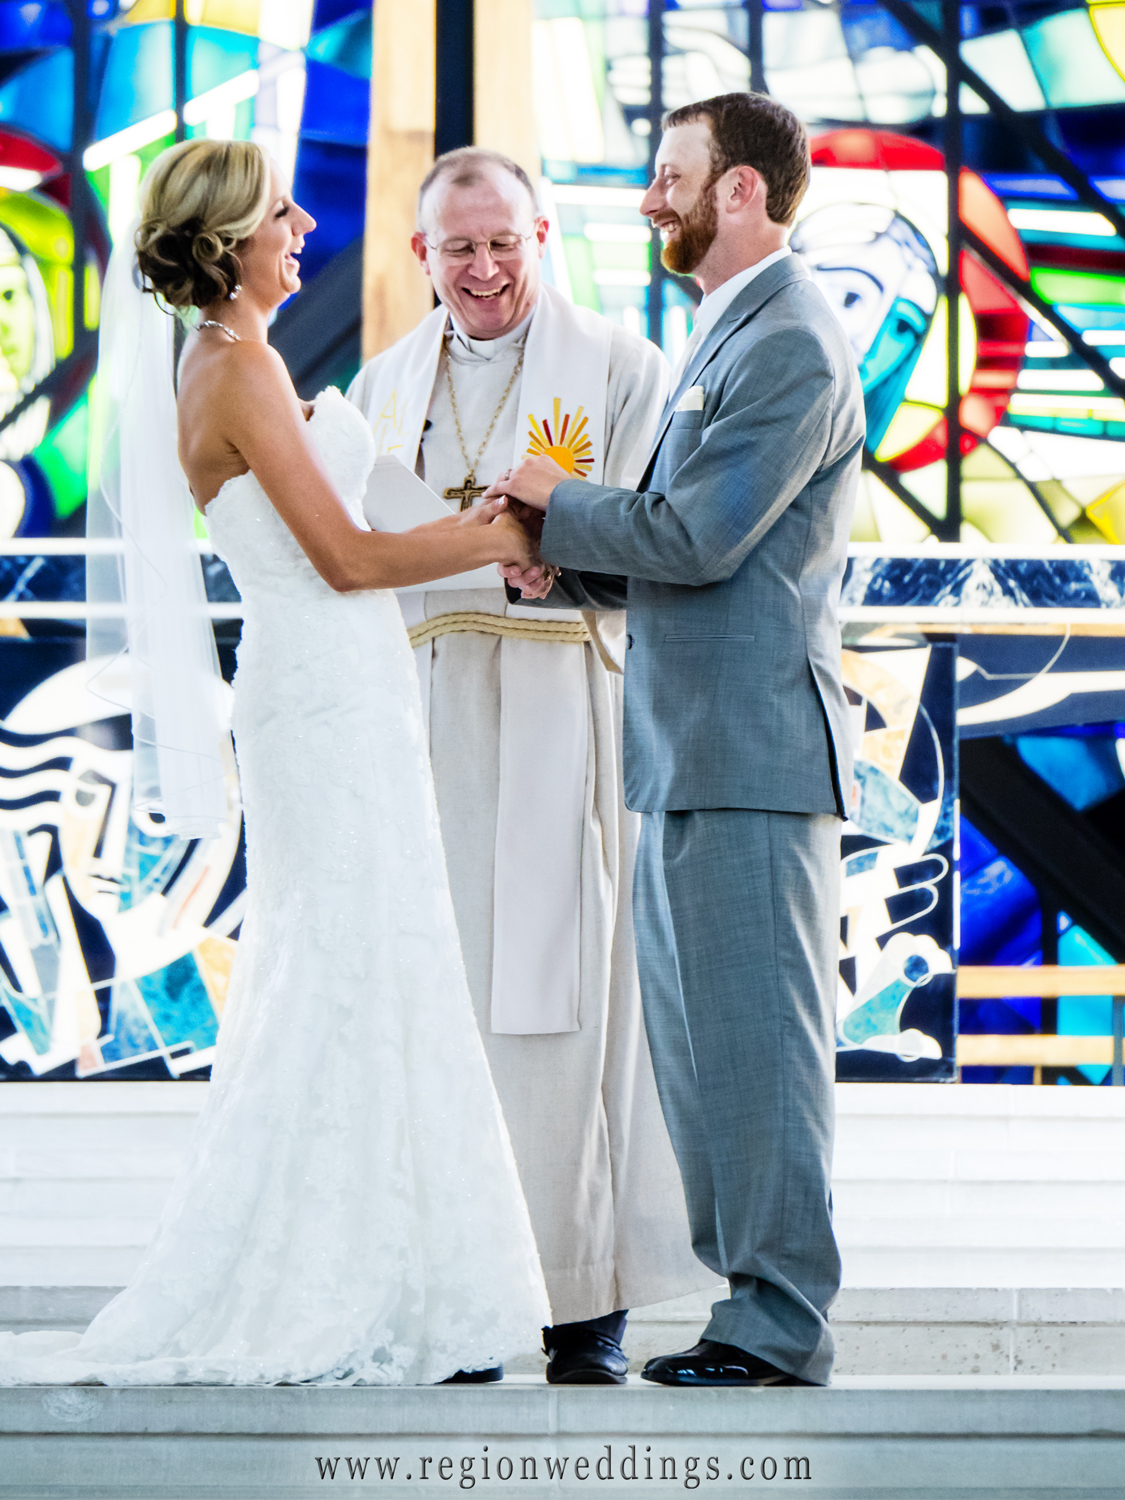 The bride and groom share a laugh with their pastor during their wedding ceremony at The Chapel of the Resurrection.